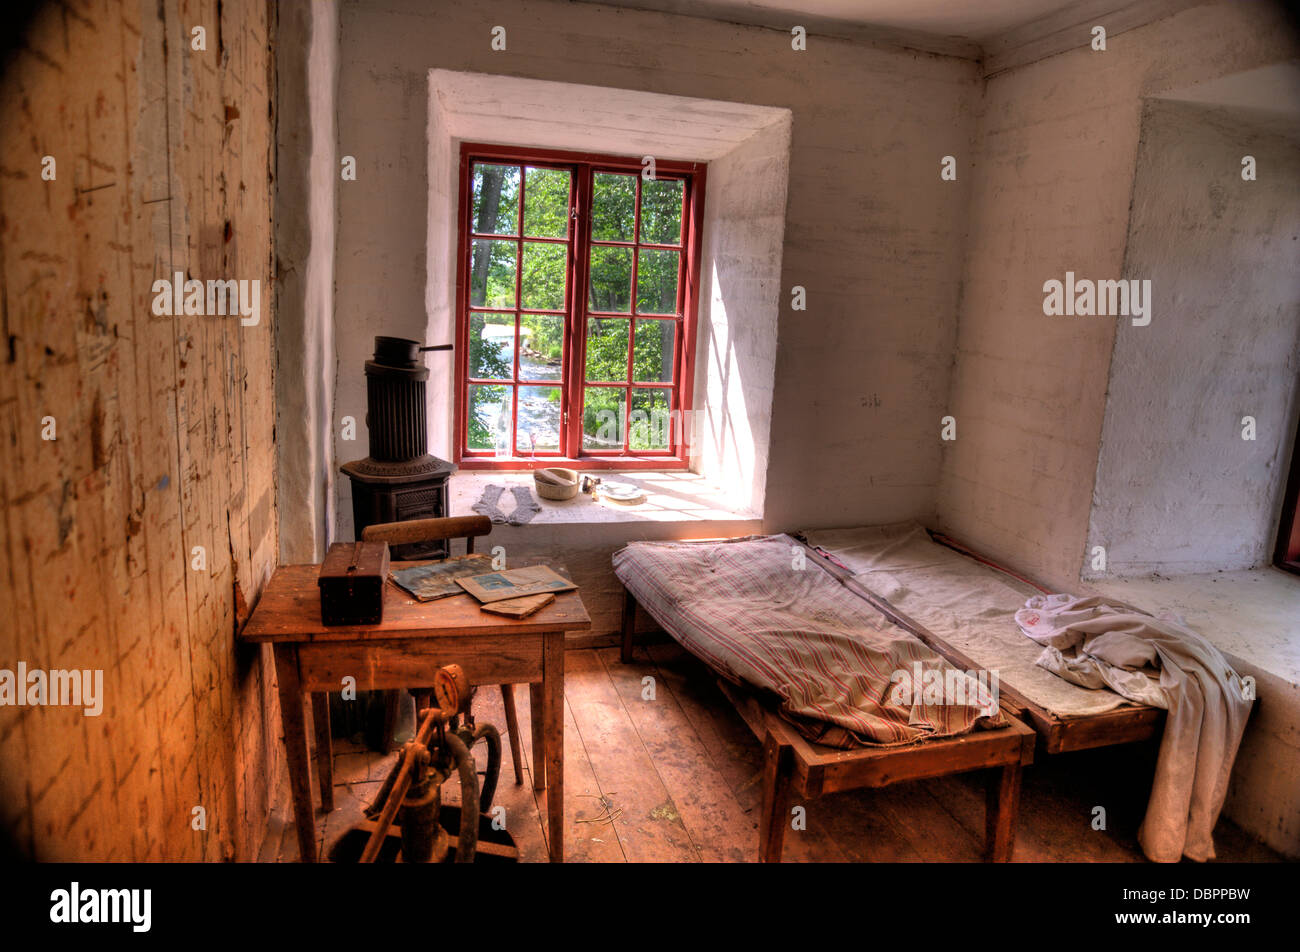 Interior of an old swedish House Stock Photo, Royalty Free Image ...